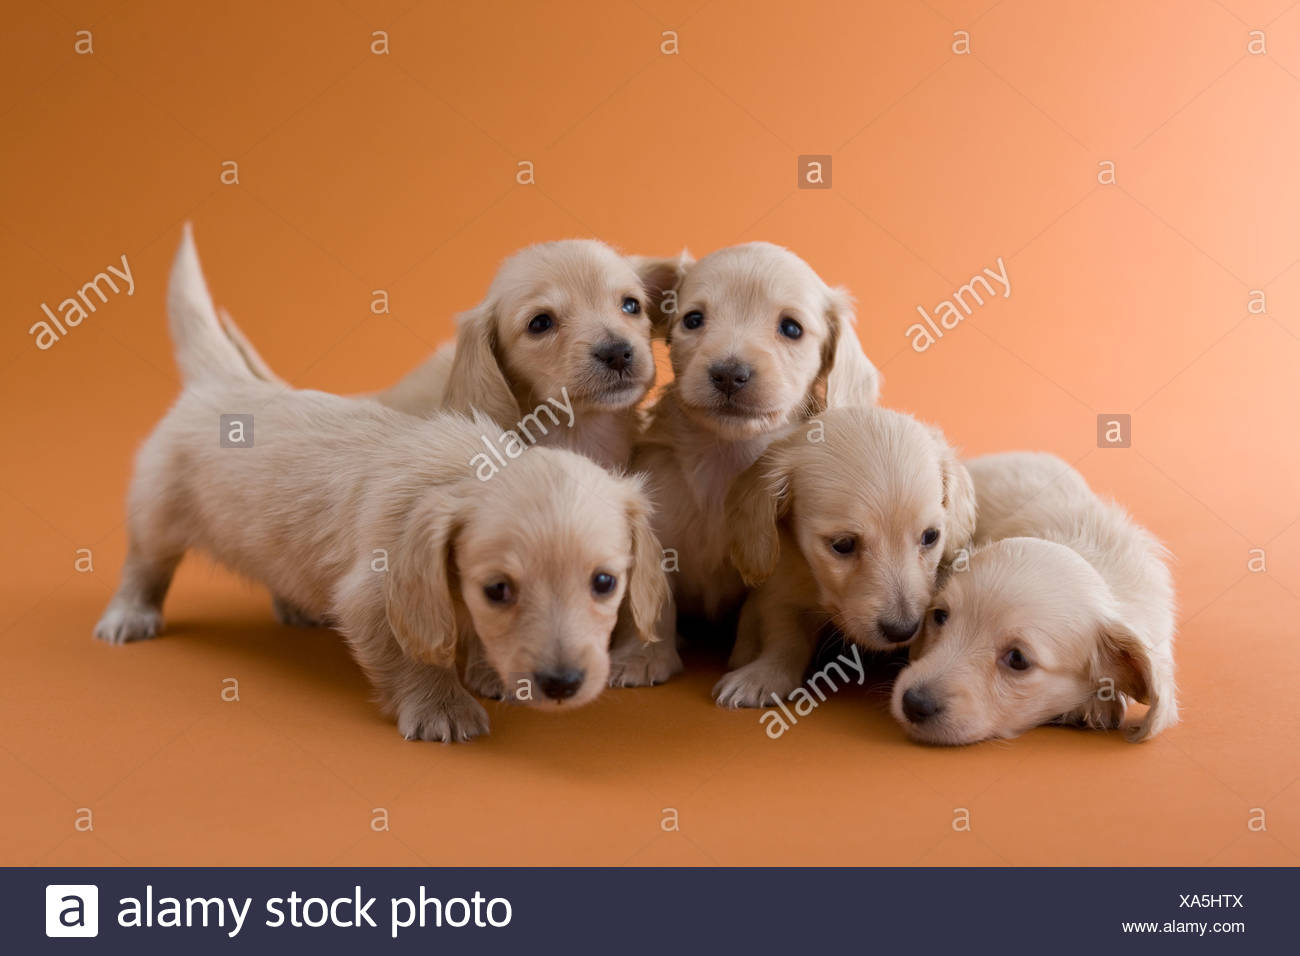 Five Dachshund Puppies Stock Photo Alamy